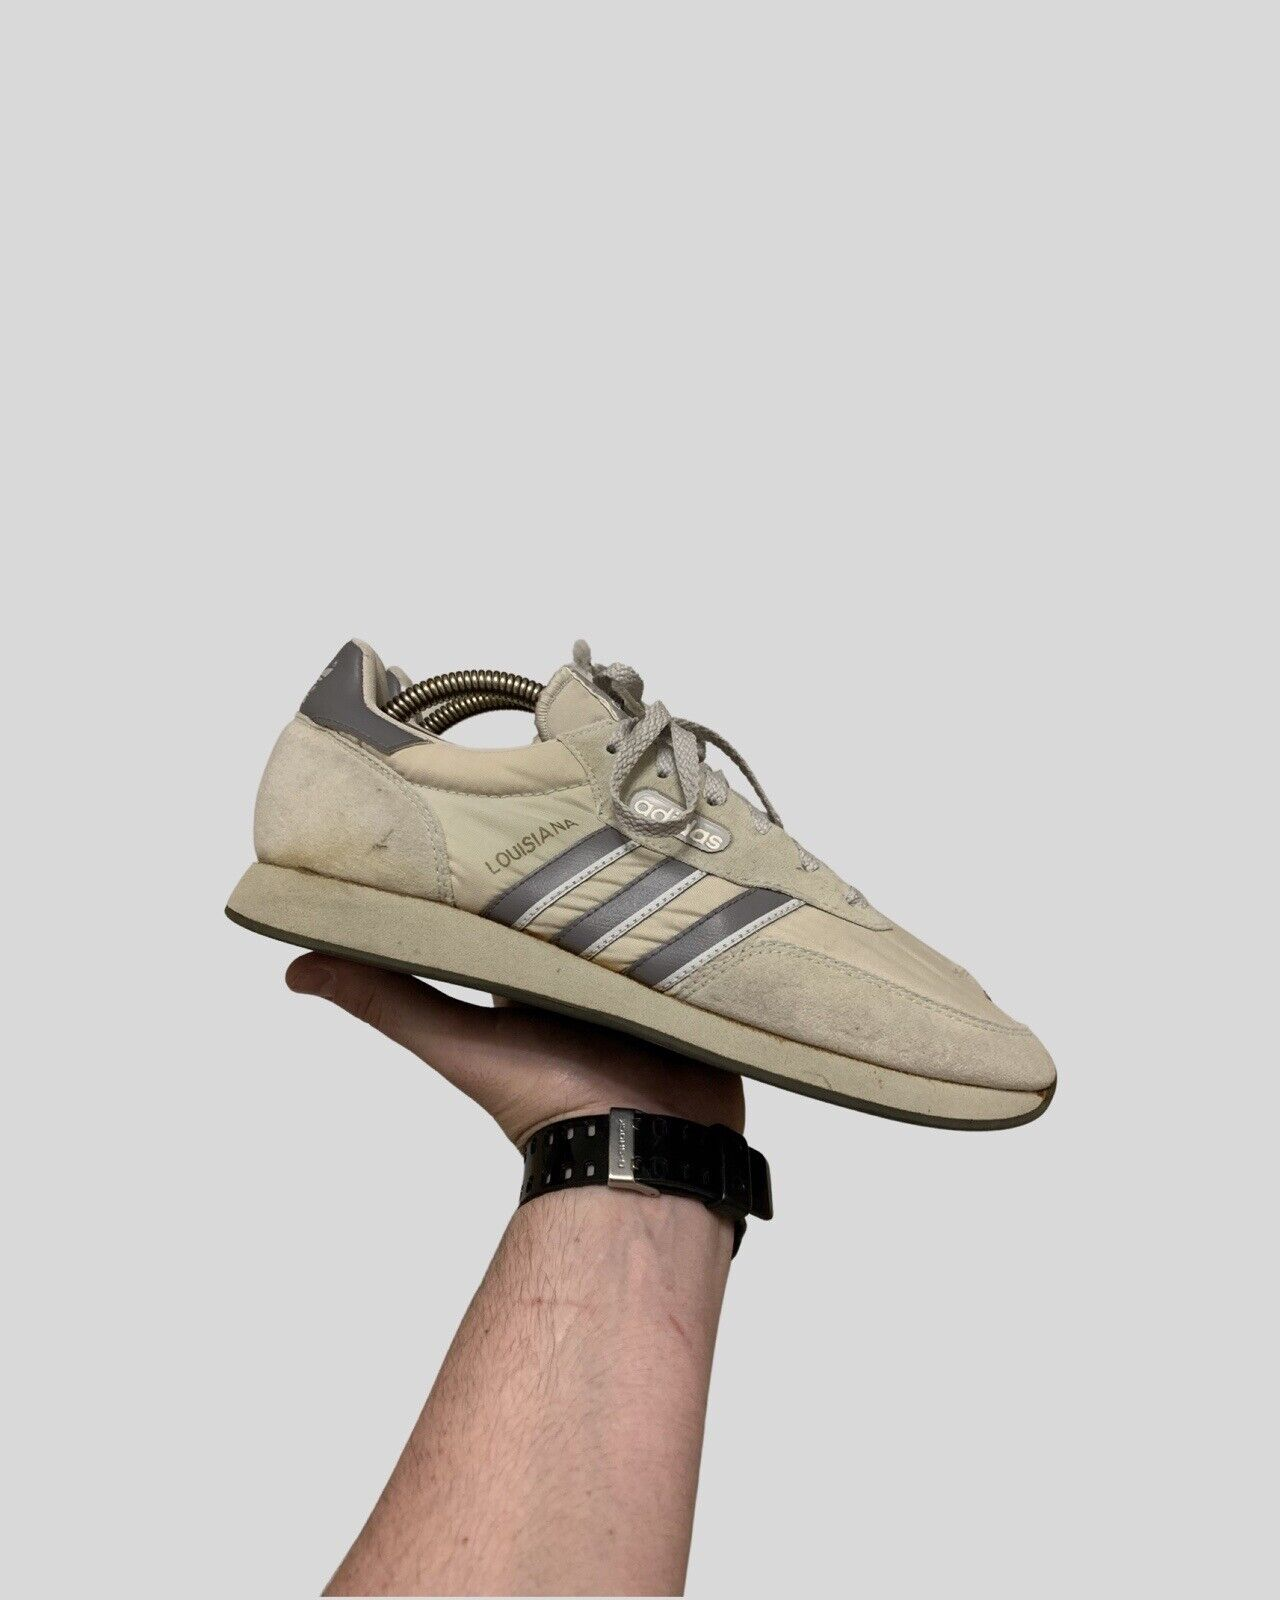 Vintage Adidas Louisiana Sneakers 1987 Color Grey UK7/40,5 Made in Philippines